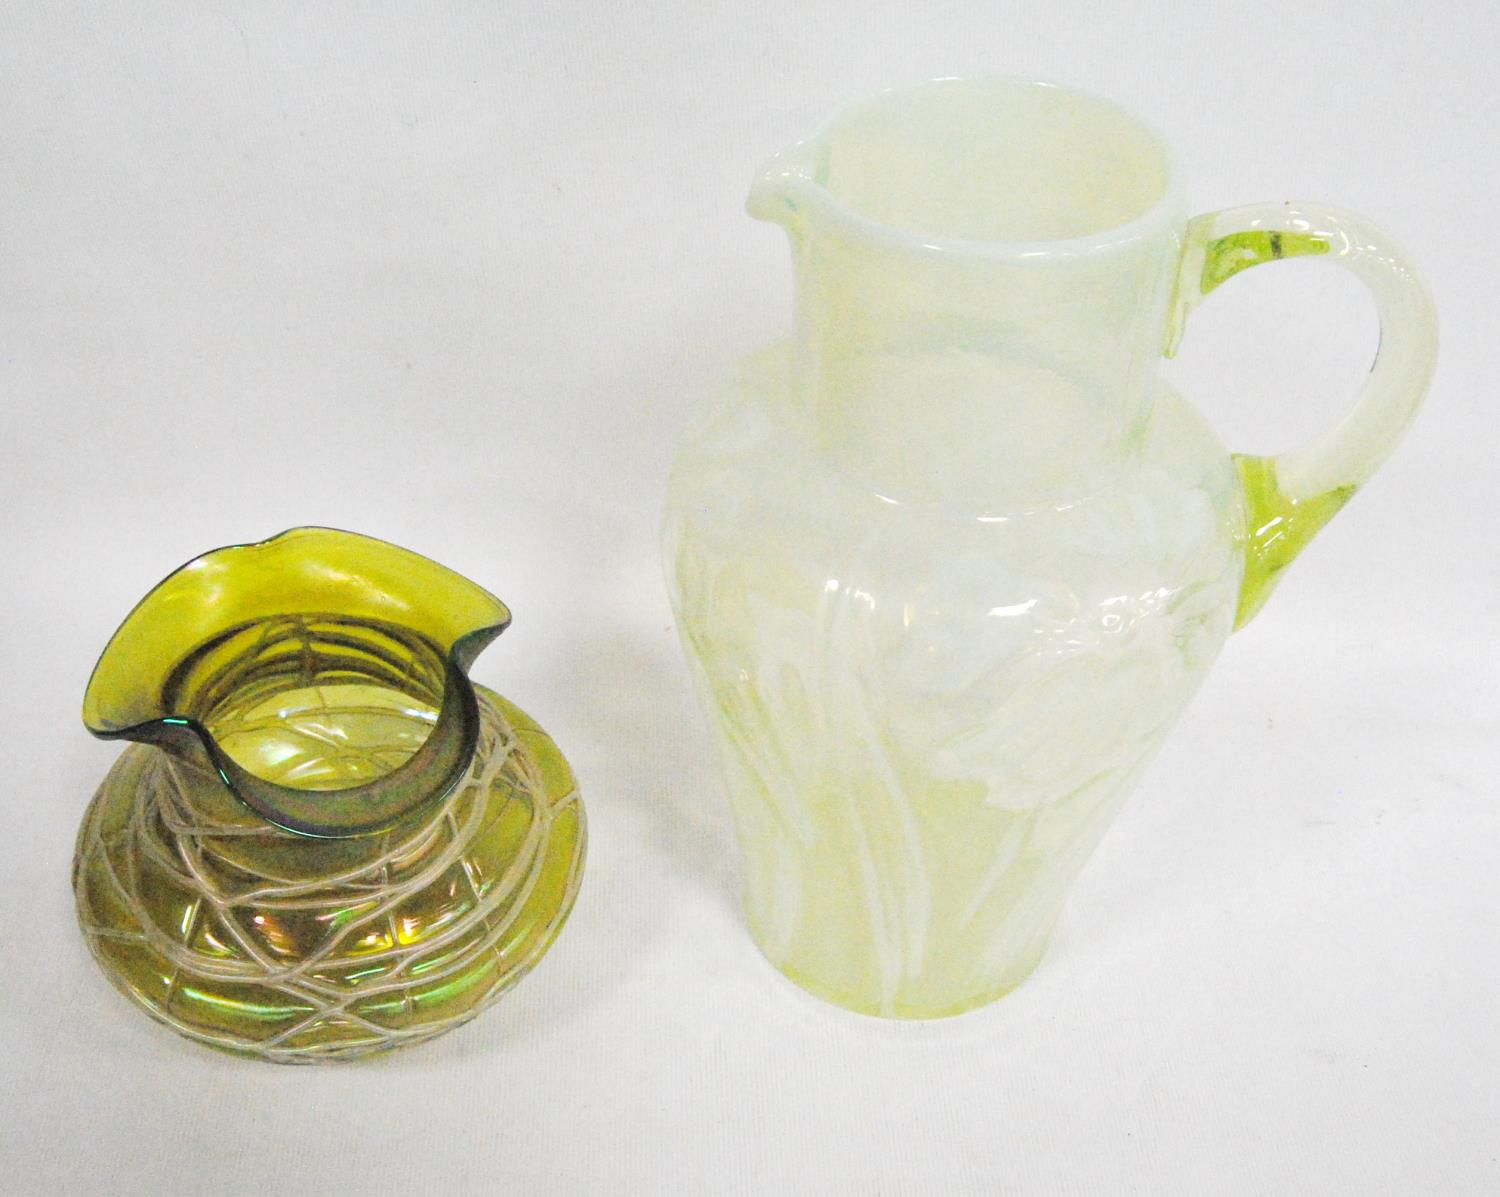 Loetz-style glass vase, 11cm high, also a vaseline-style jug with floral decoration, 23cm high. (2) - Image 2 of 10